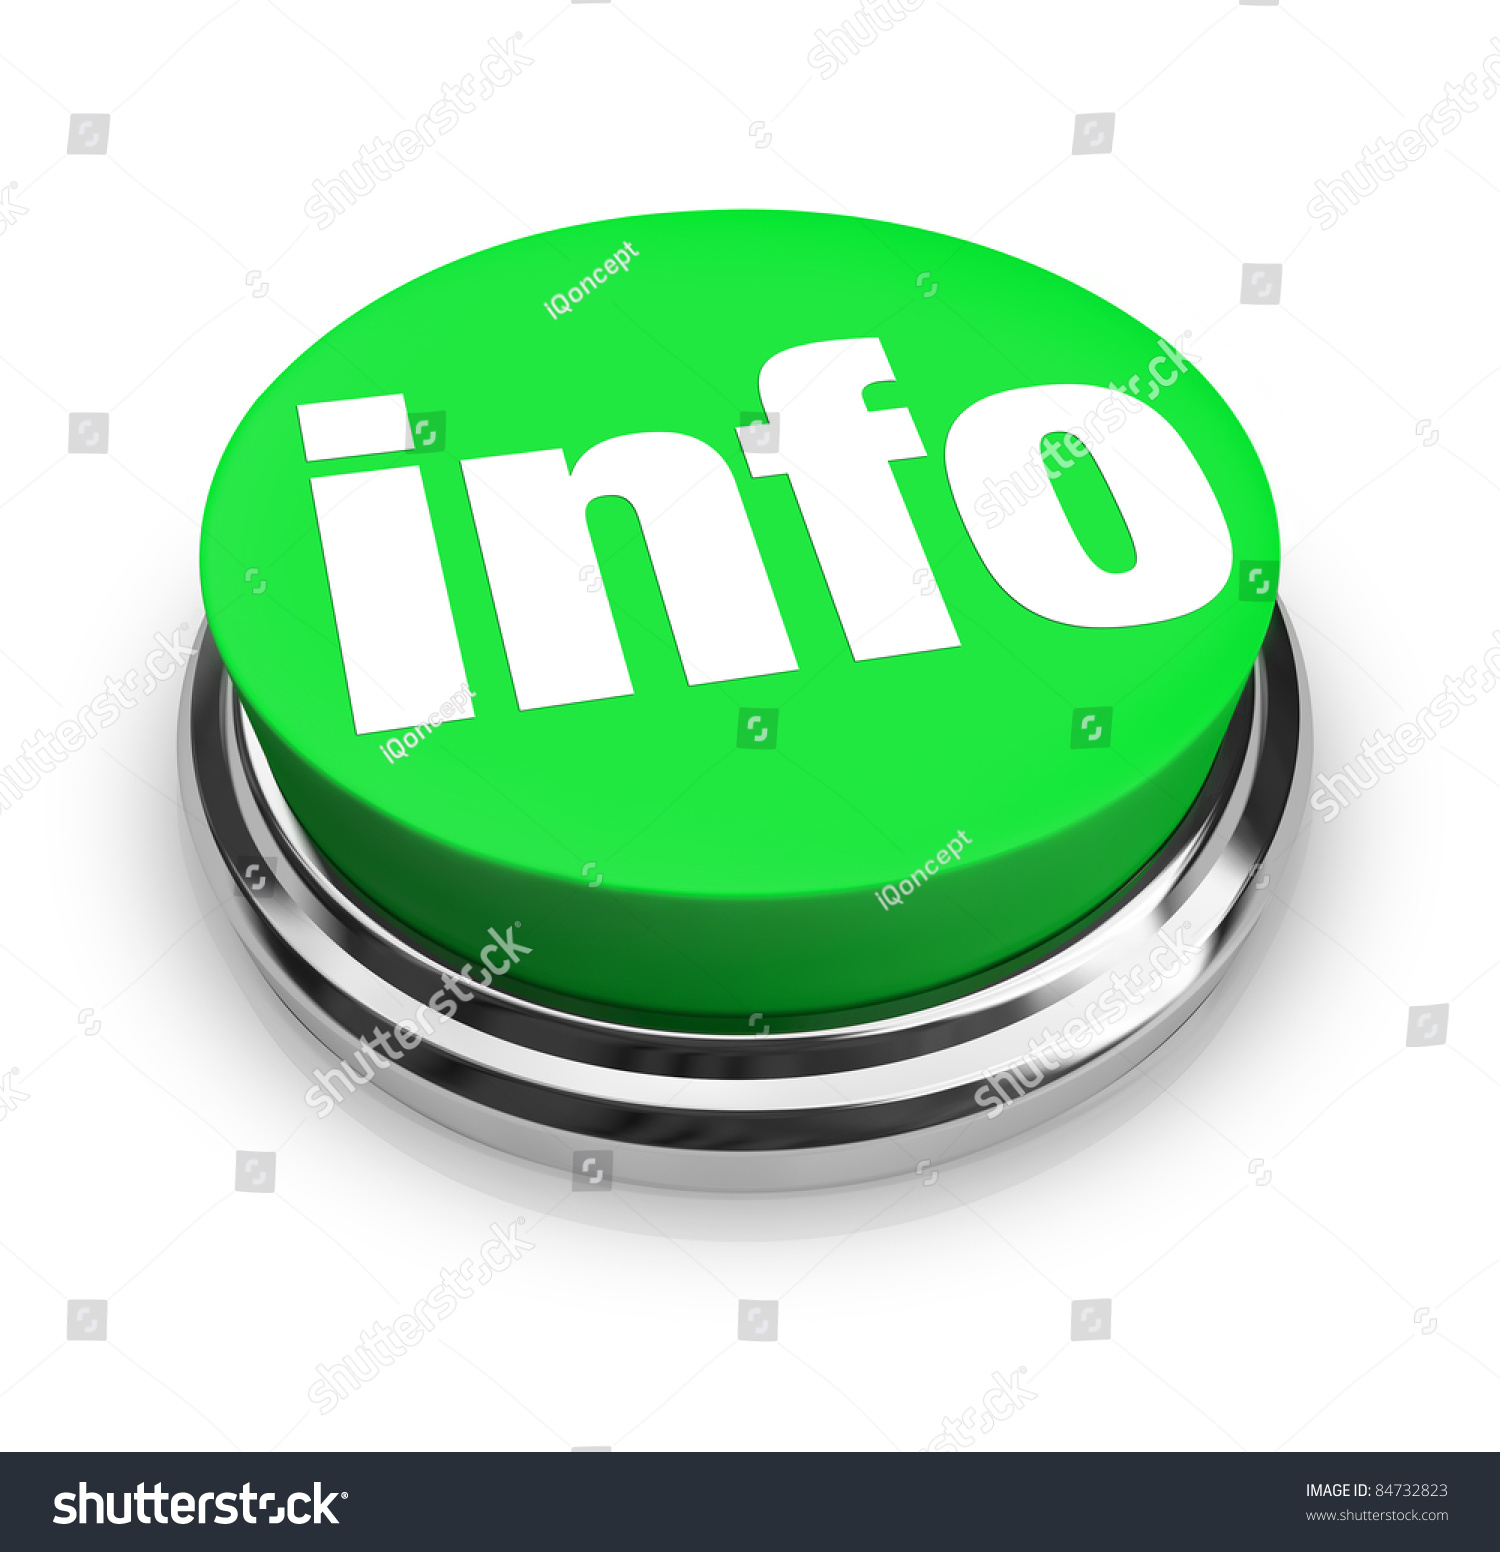 A Green Button With The Word Info Representing A Way To